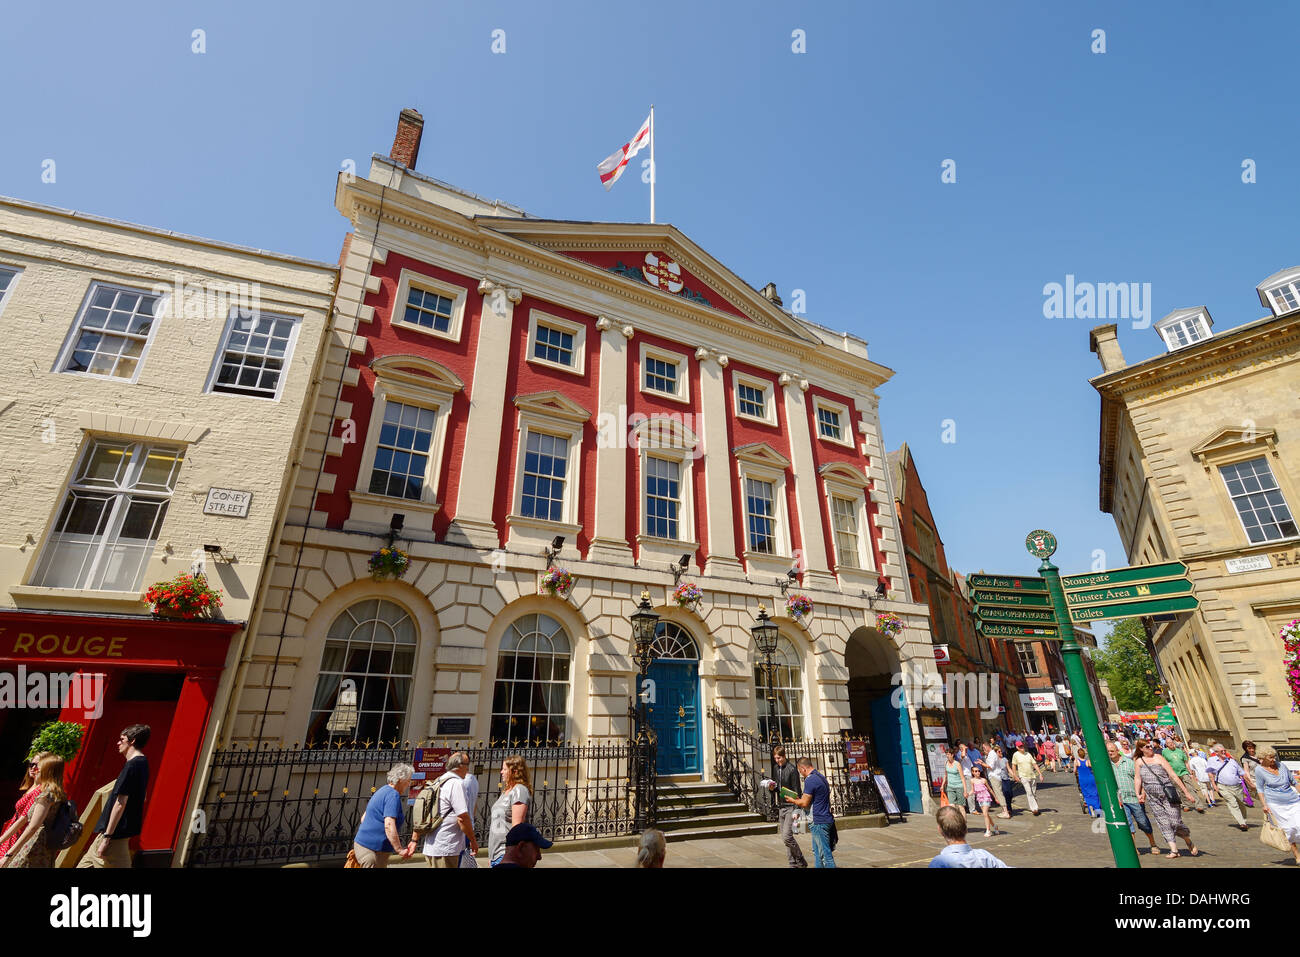 The Mansion House in York city centre UK - Stock Image